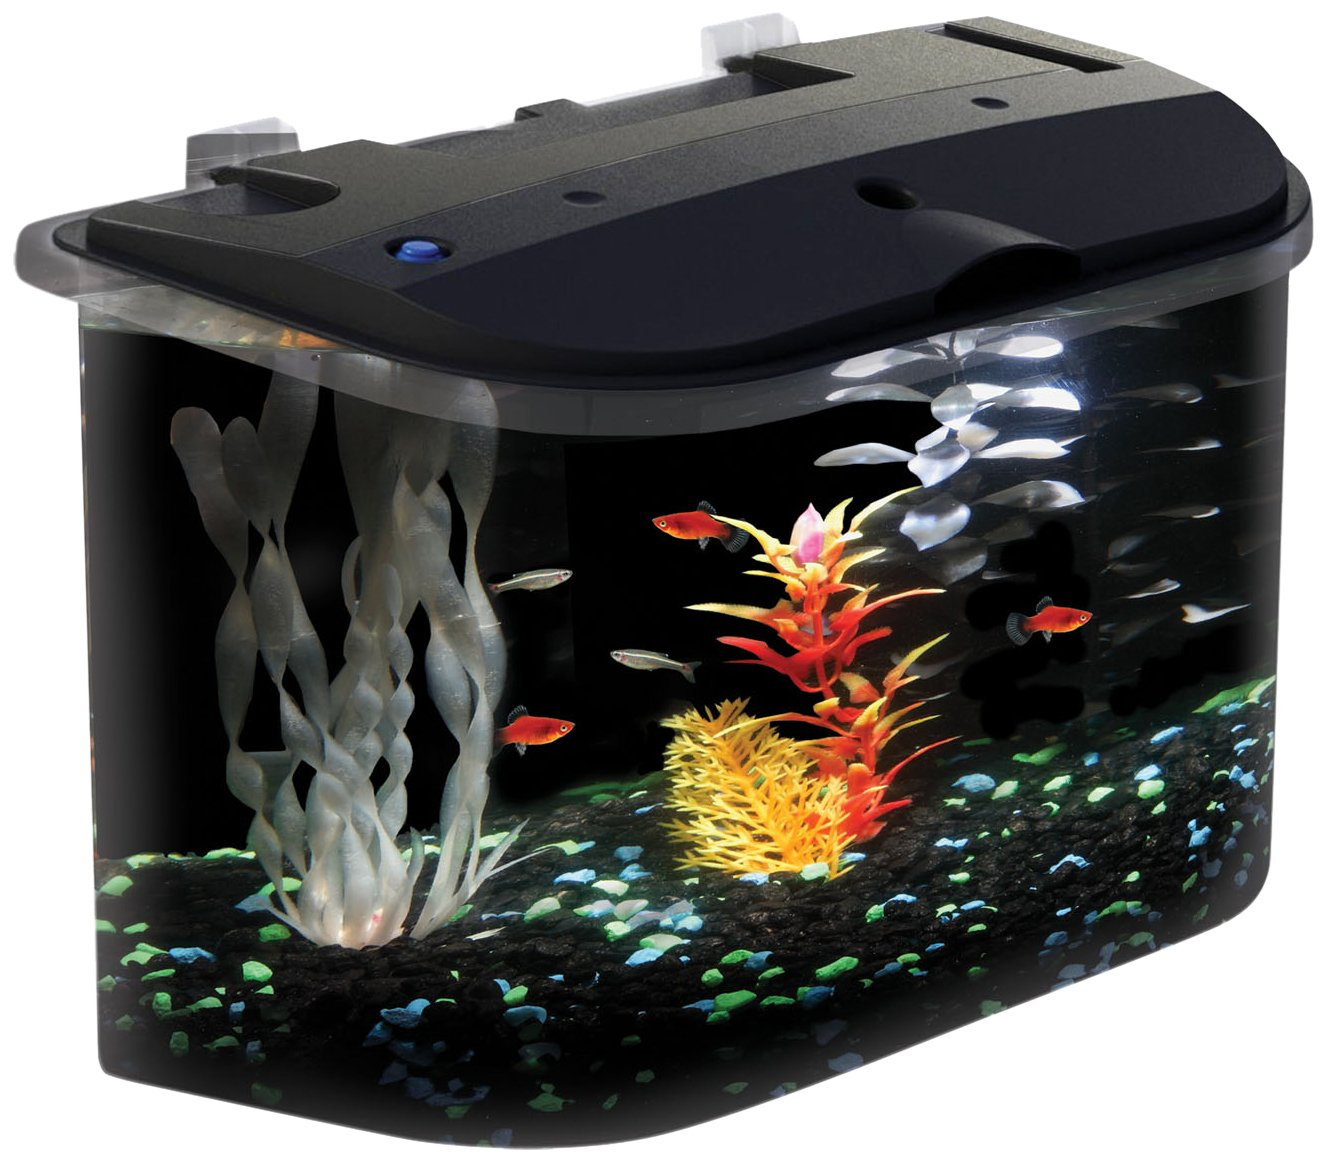 Fish aquarium is good in home - Amazon Com Api Panaview Aquarium Kit With Led Lighting And Power Filter 5 Gallon Fish Tank Pet Supplies